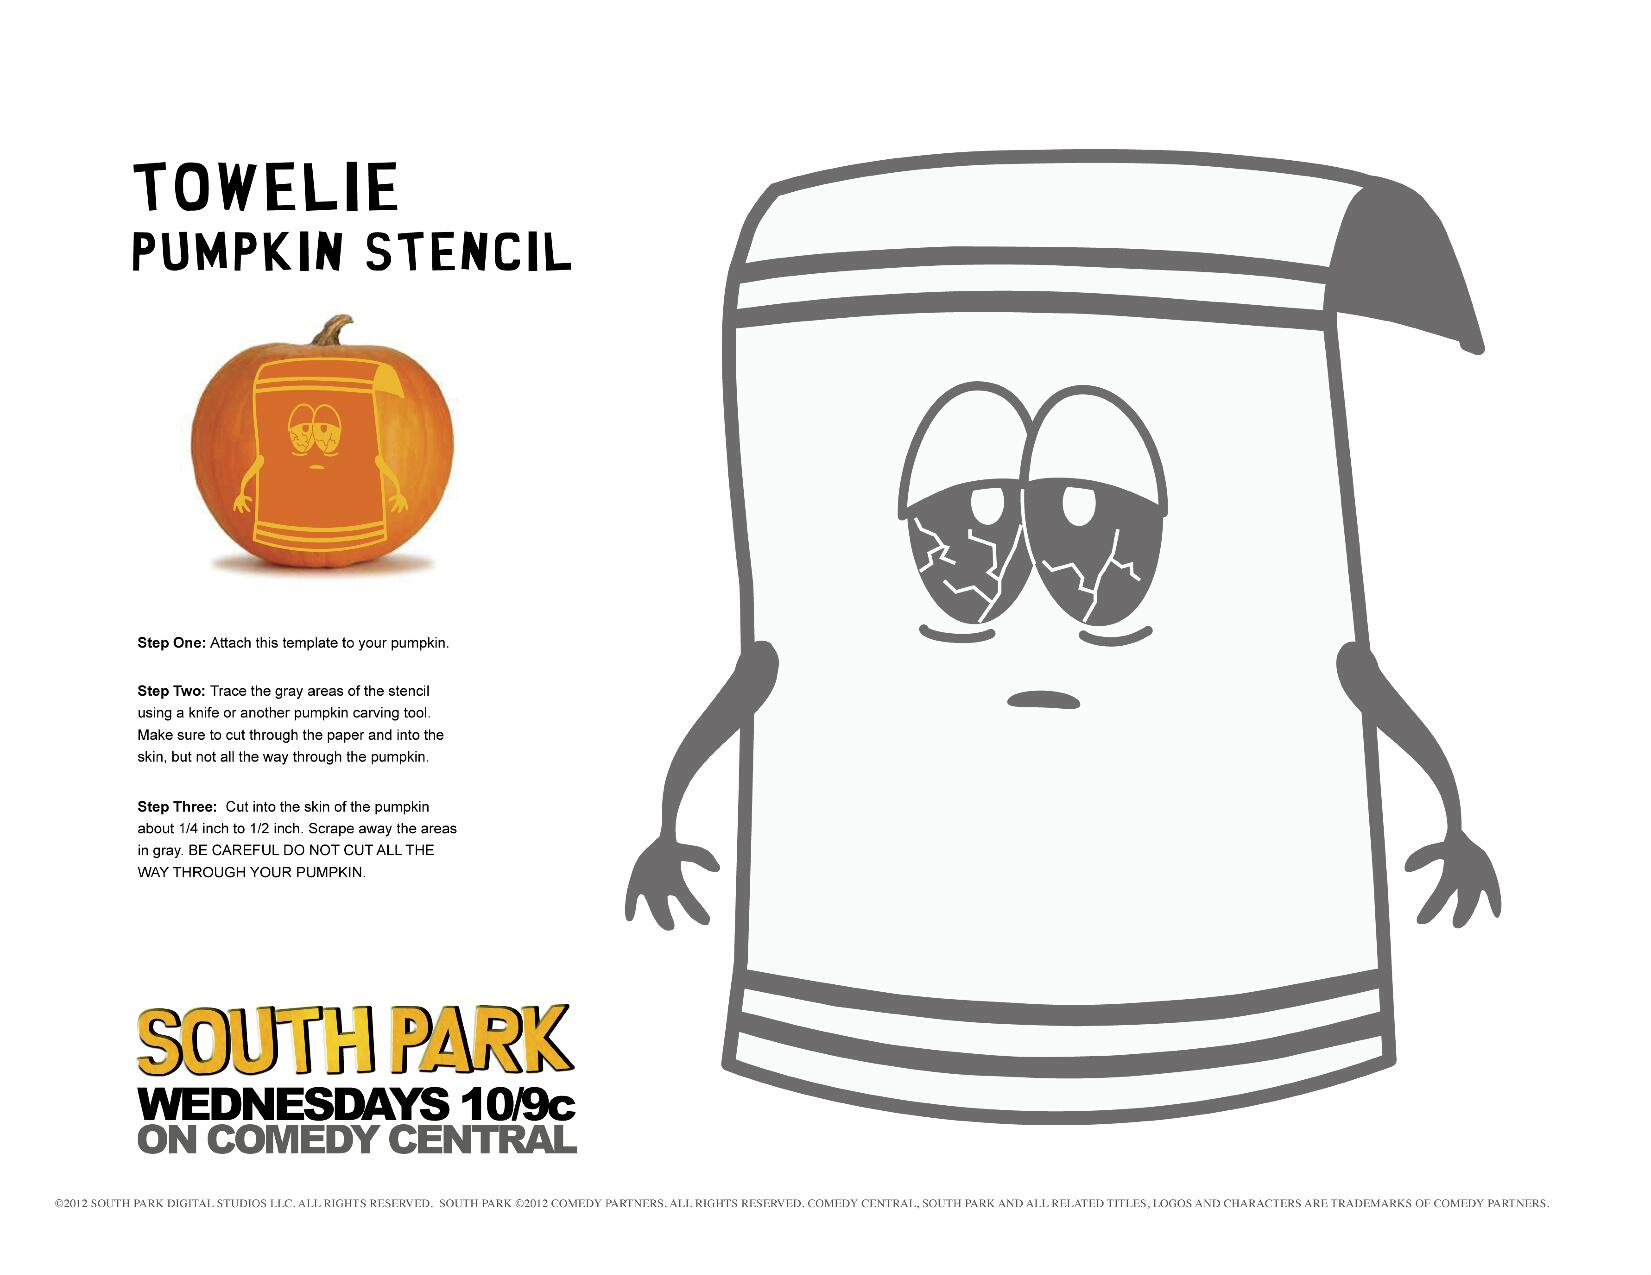 South Park On Twitter Halloween Use This Stencil To Carve Your Very Own Towelie Pumpkin No YOURE A Towel Tco OnNXSDgBoJ